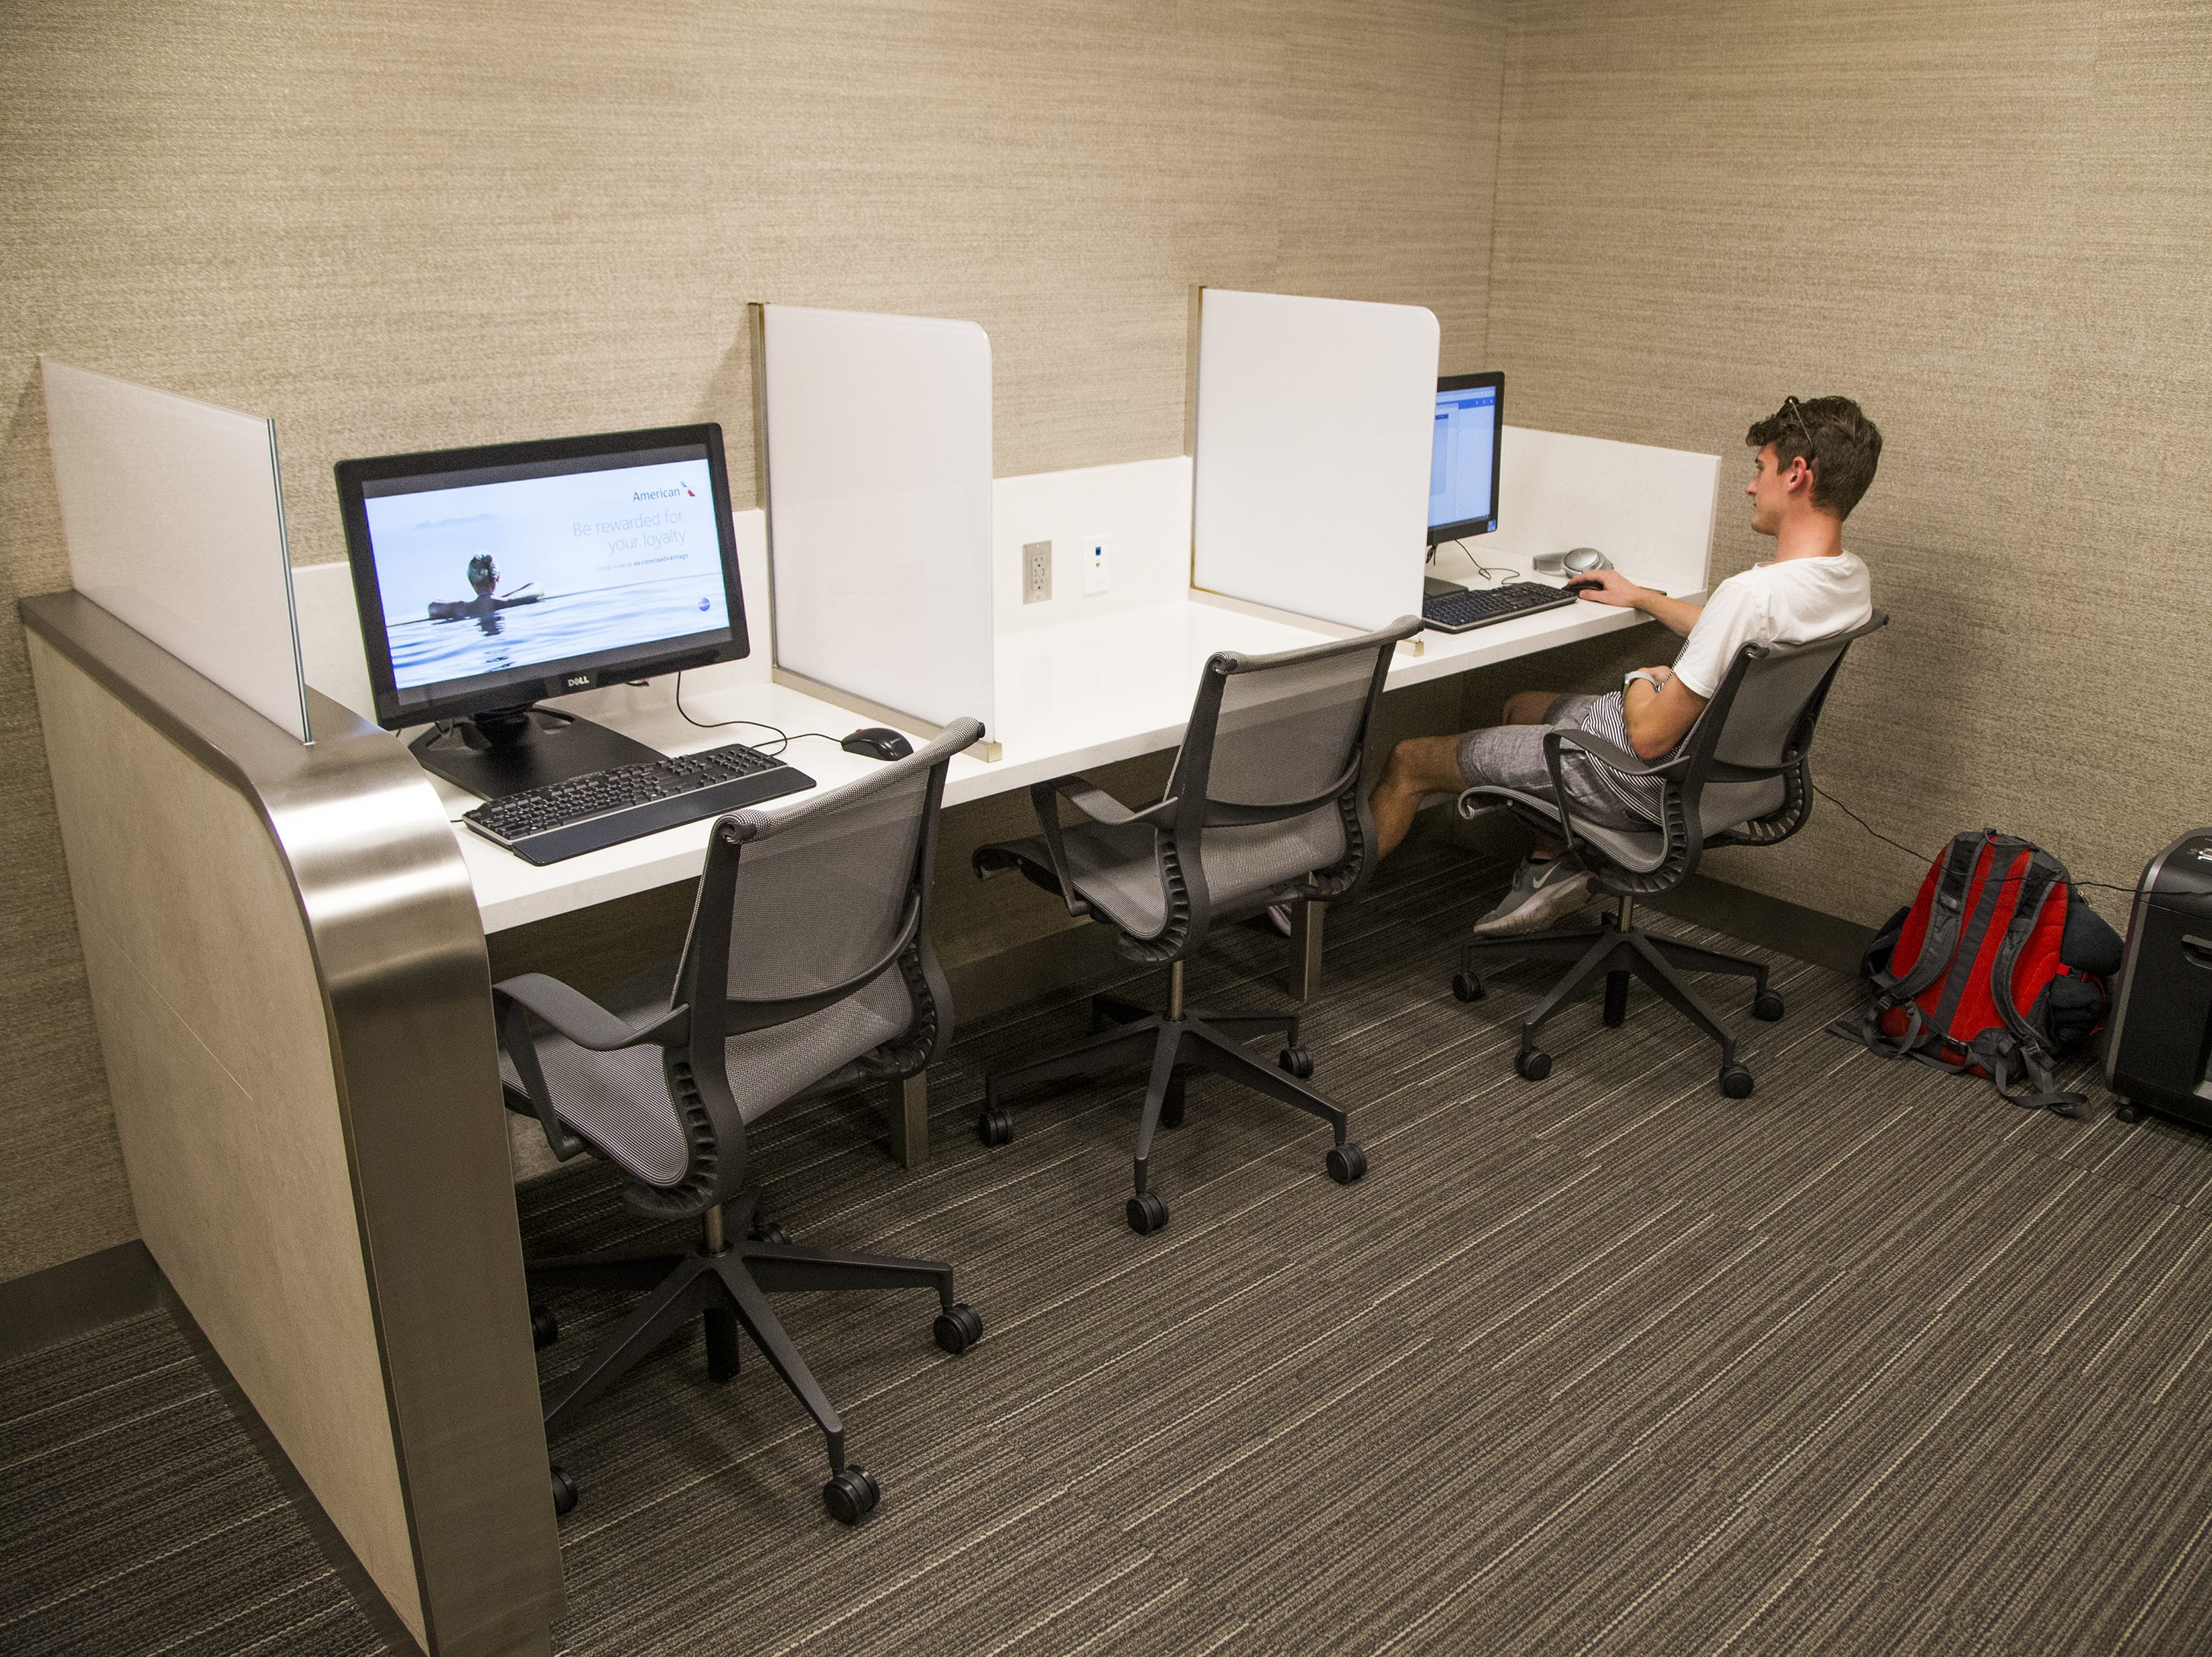 Curt Forrester of Waco, Texas, works in the computer room of the American Airlines Admirals Club in Terminal 4 at Sky Harbor International Airport, Wednesday, October 31, 2018.